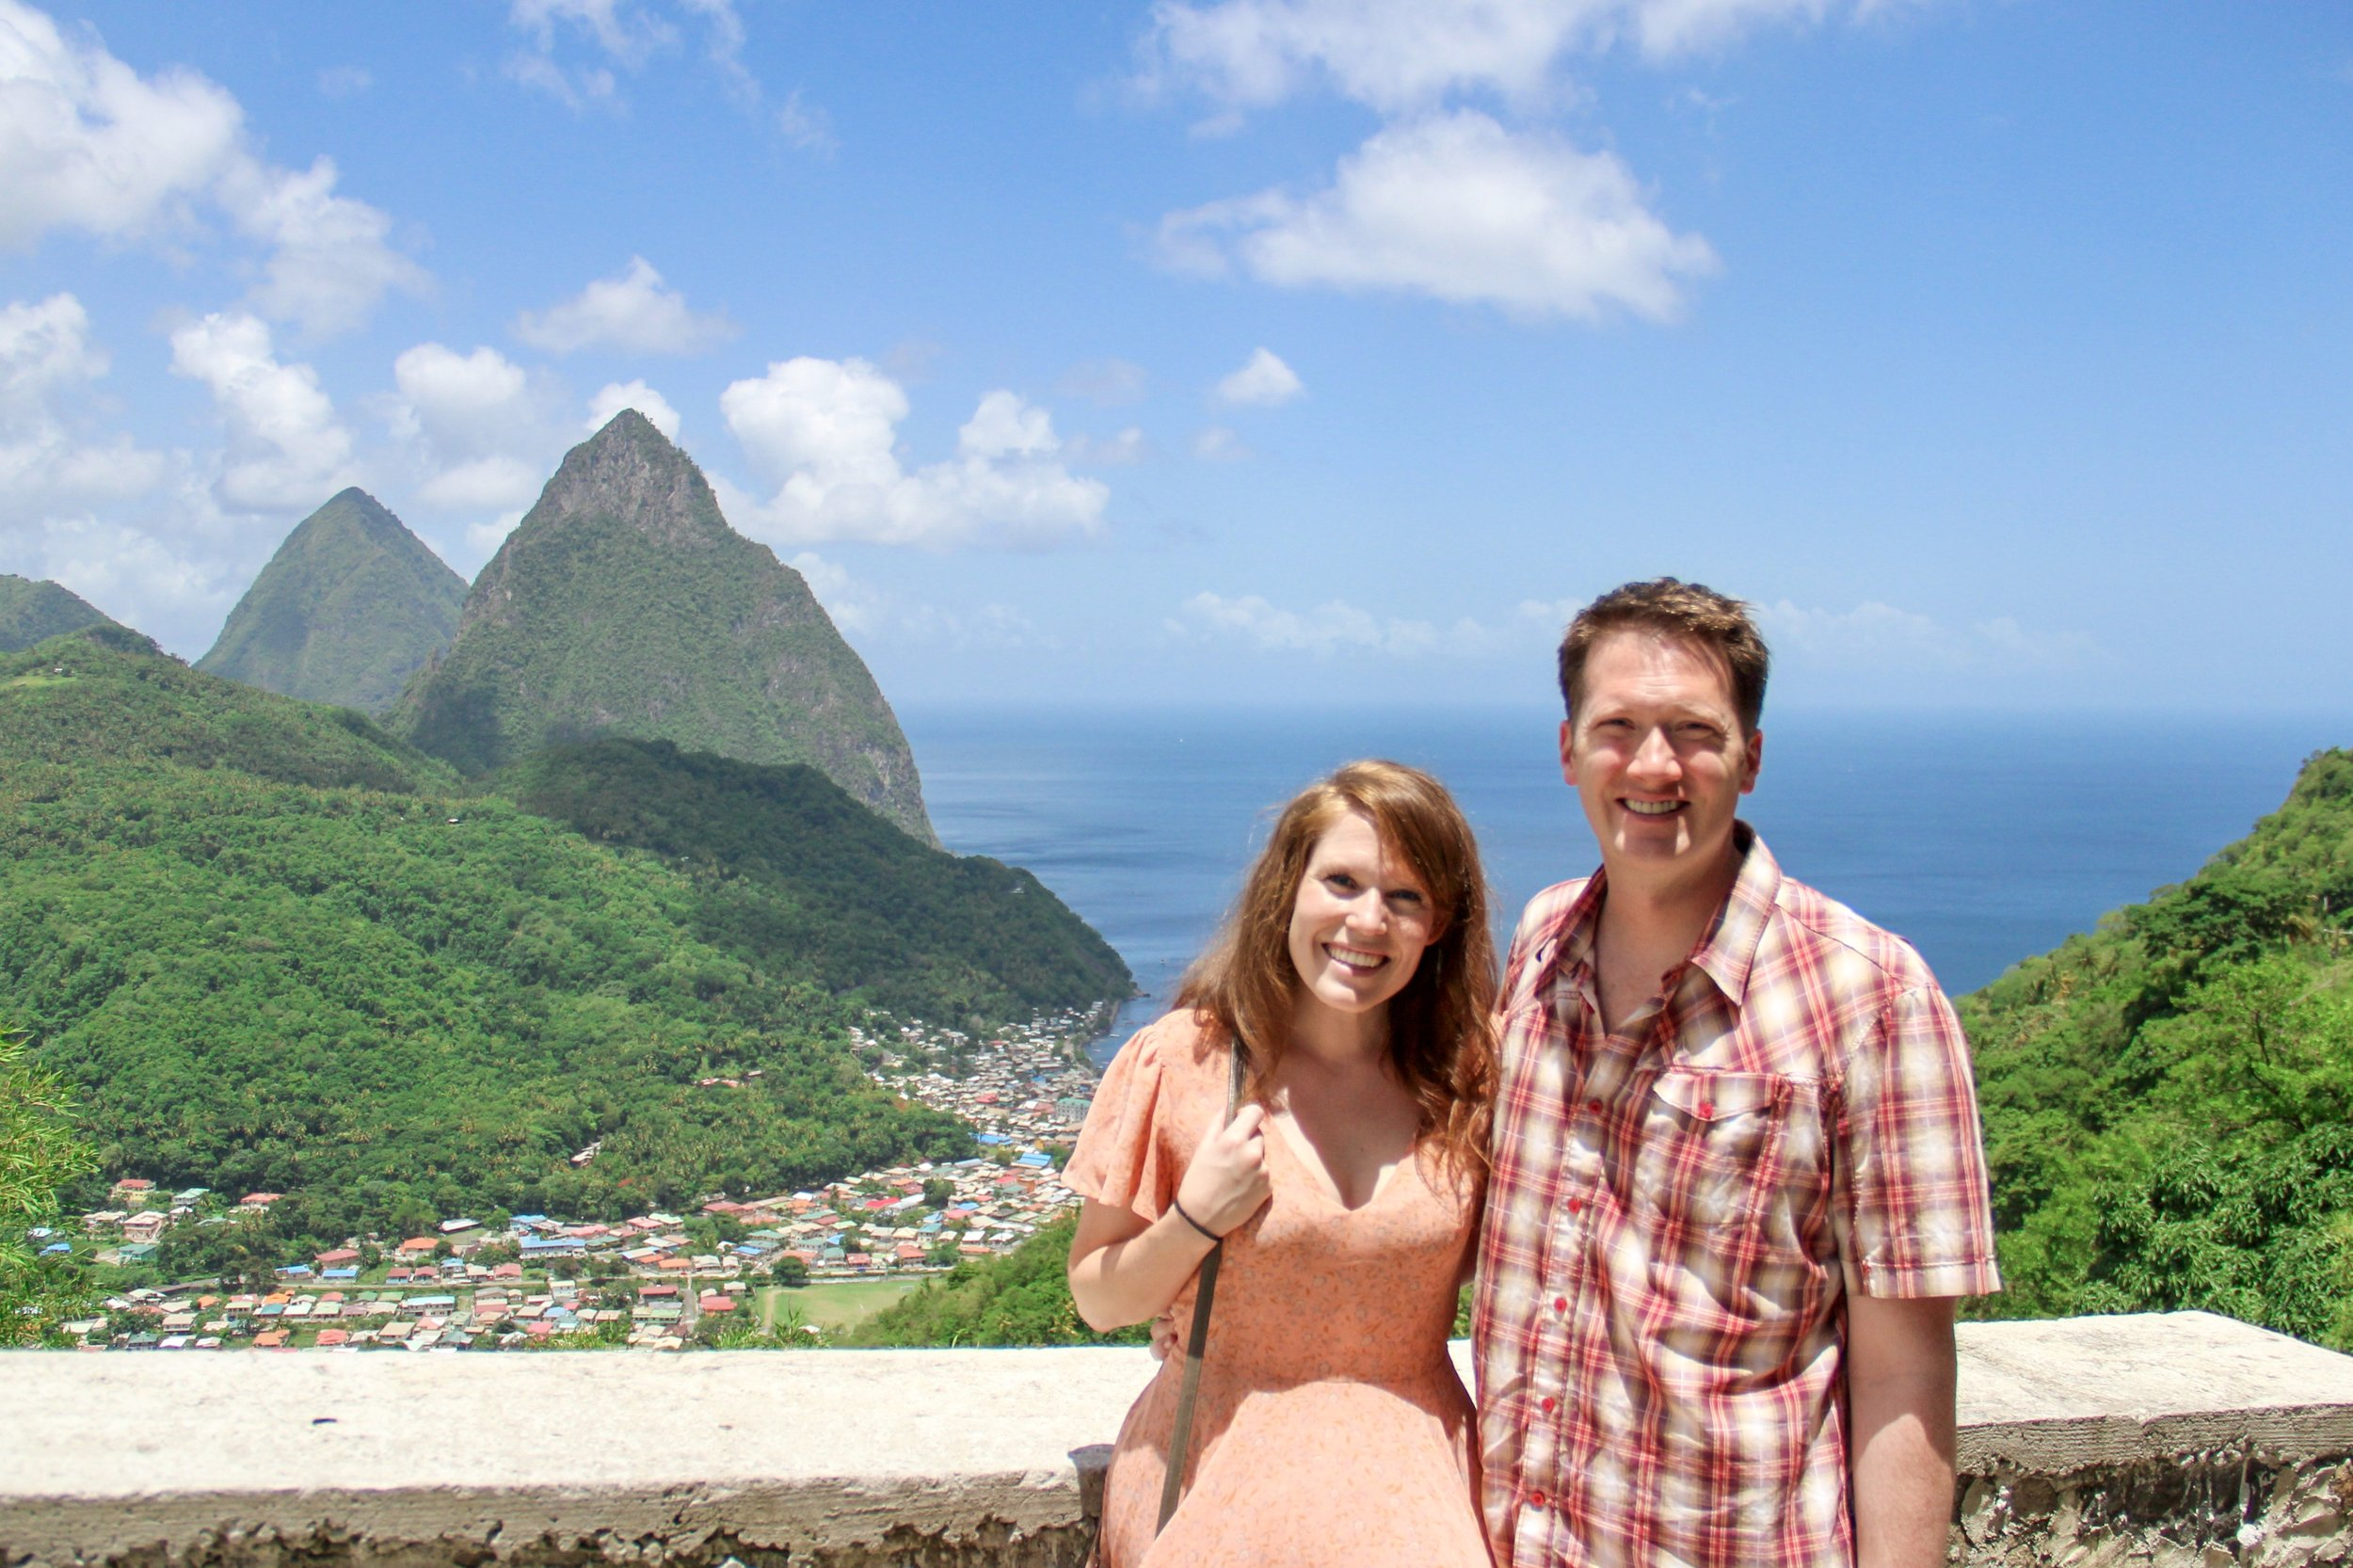 Ryan and I on our Saint Lucia honeymoon in 2017.